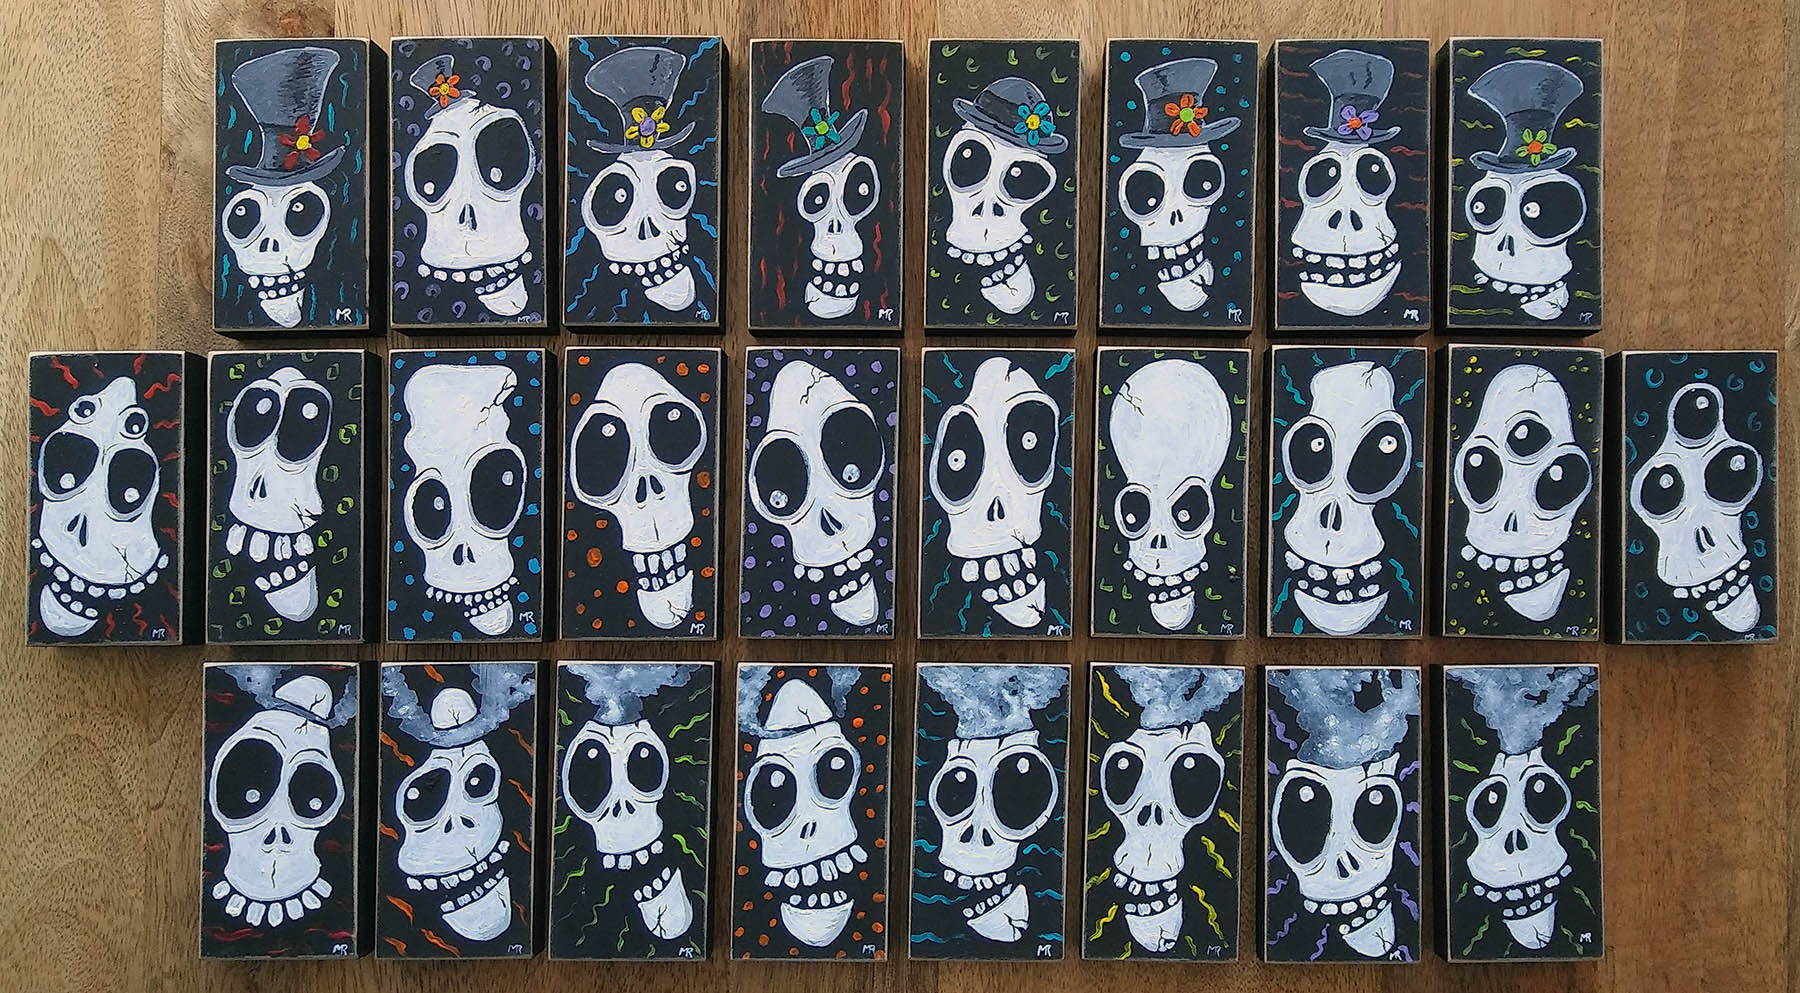 New Skulls by Mike Rende in the Mobile Art Machine